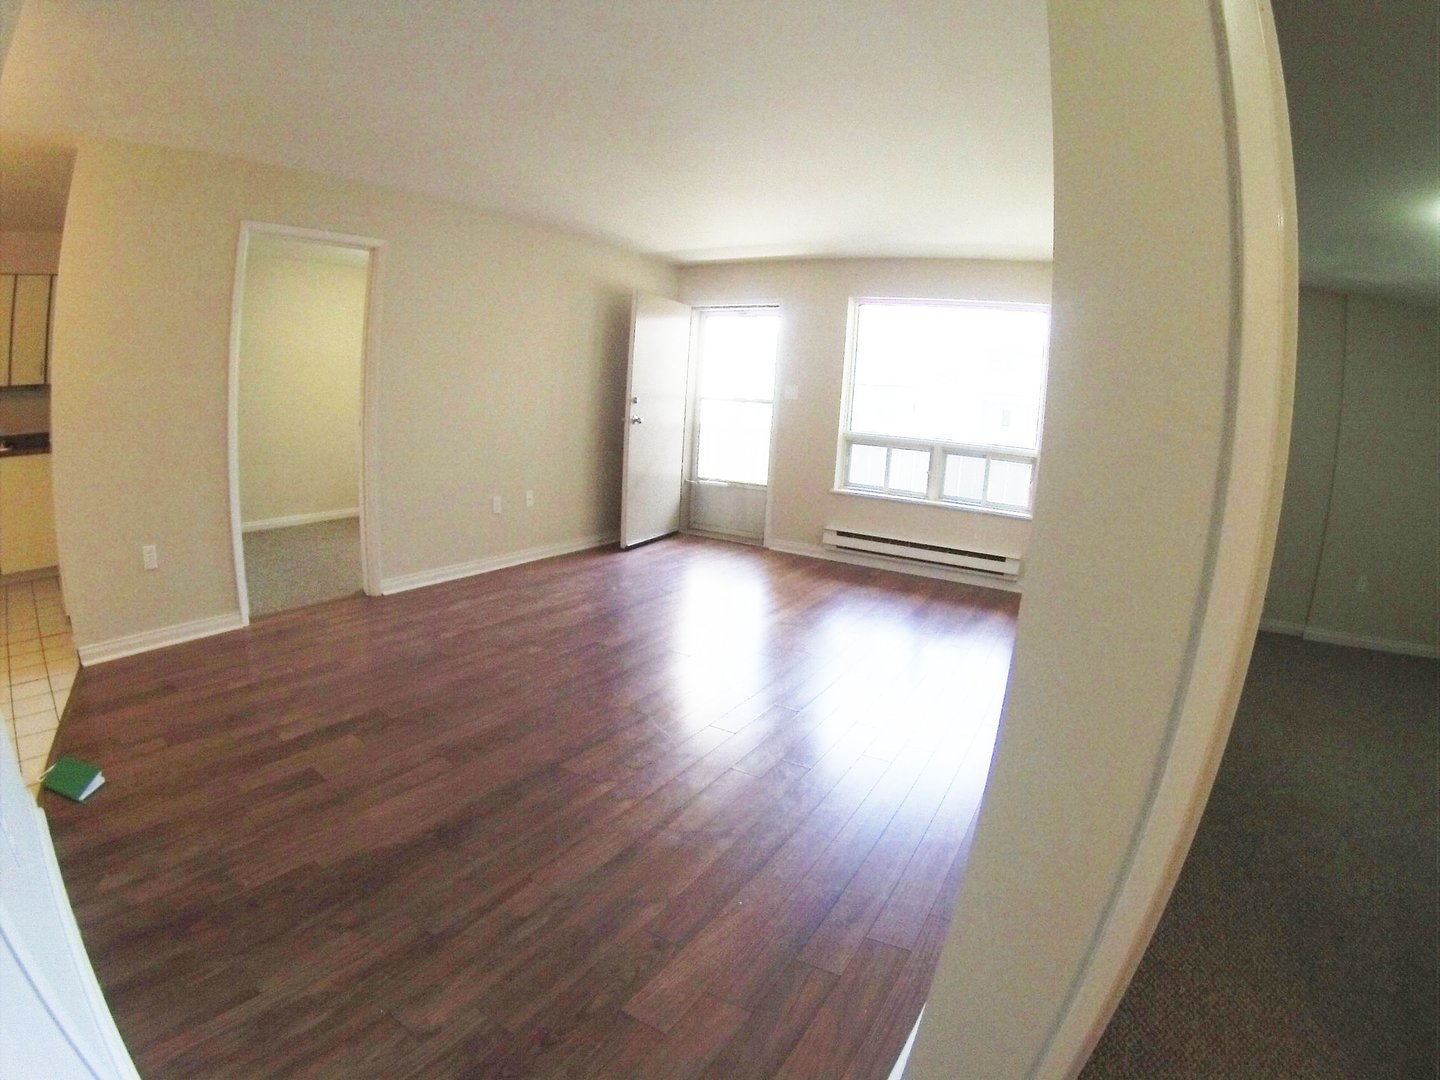 Apartment for rent at 96 Highfield Park Drive B, Dartmouth, NS. This is the empty room with hardwood floor, carpet and natural light.